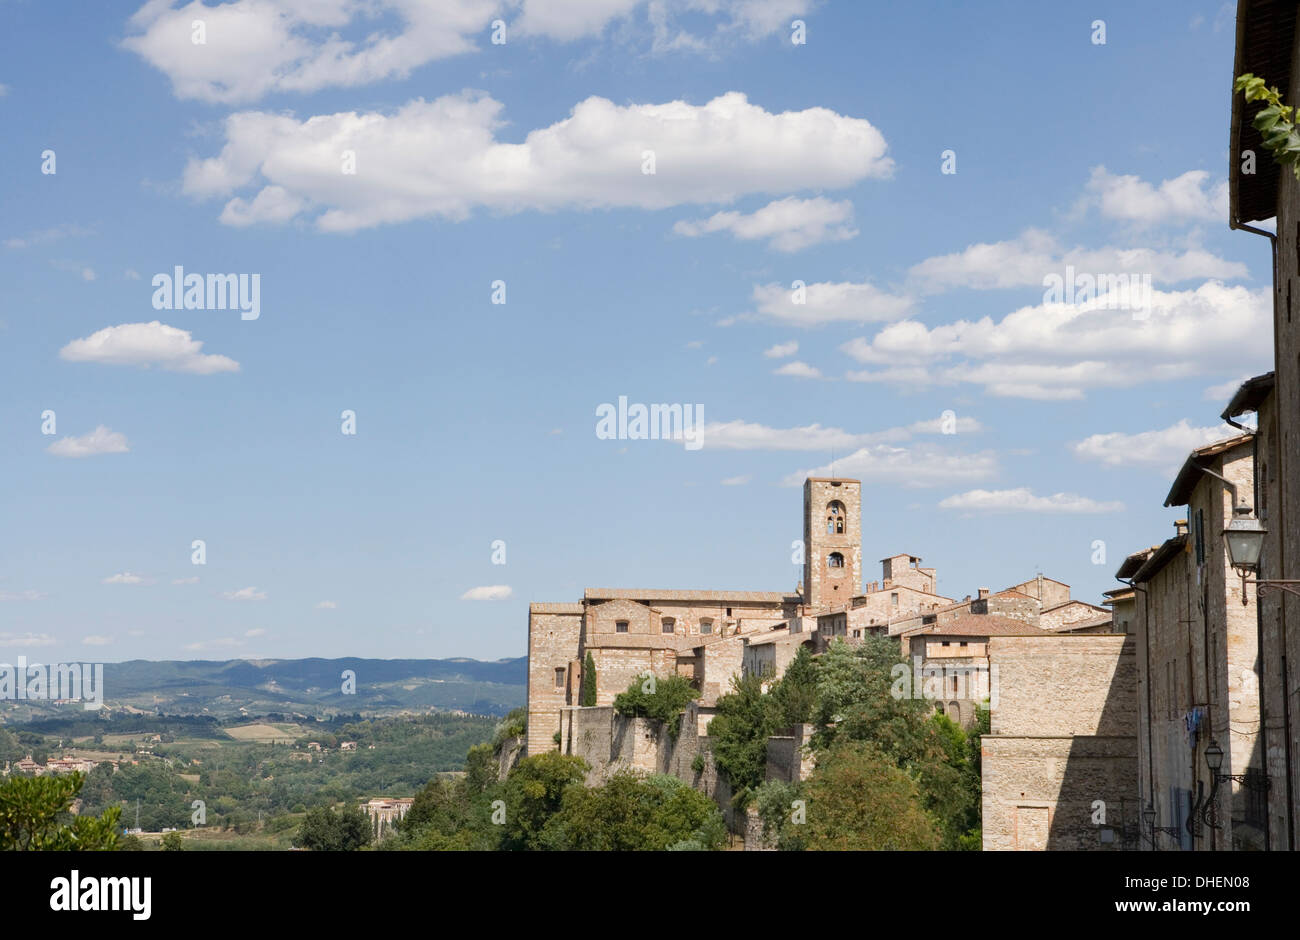 Duomo of Colle Alta in Colle di val d'Elsa, Tuscany, Italy - Stock Image